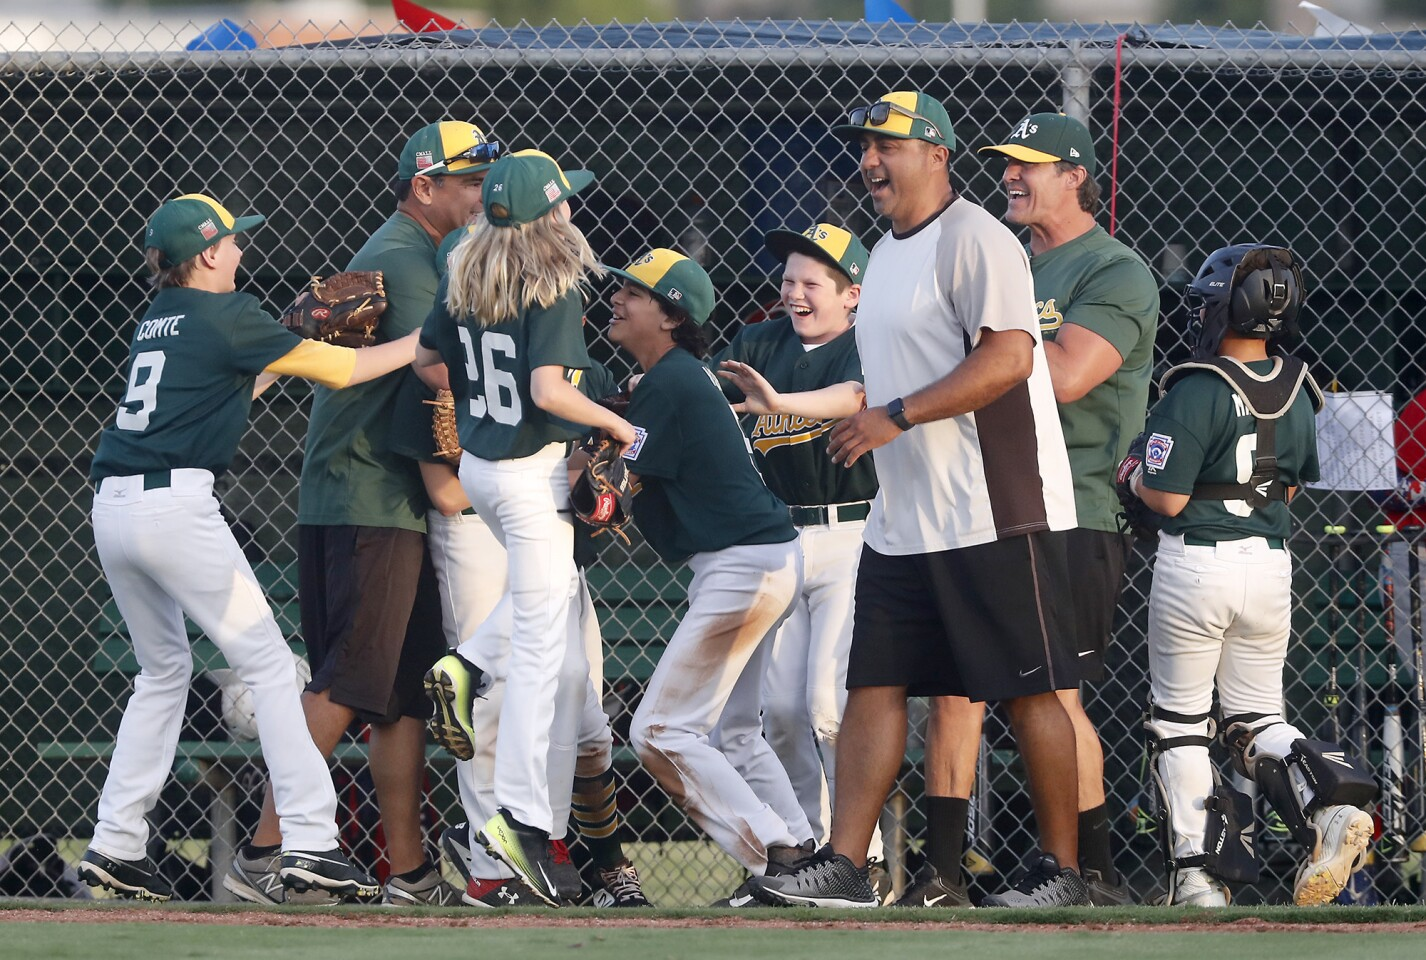 Photo Gallery: Costa Mesa American Little League No. 1 vs. Ocean View Little League No. 2 in the District 62 Tournament of Champions